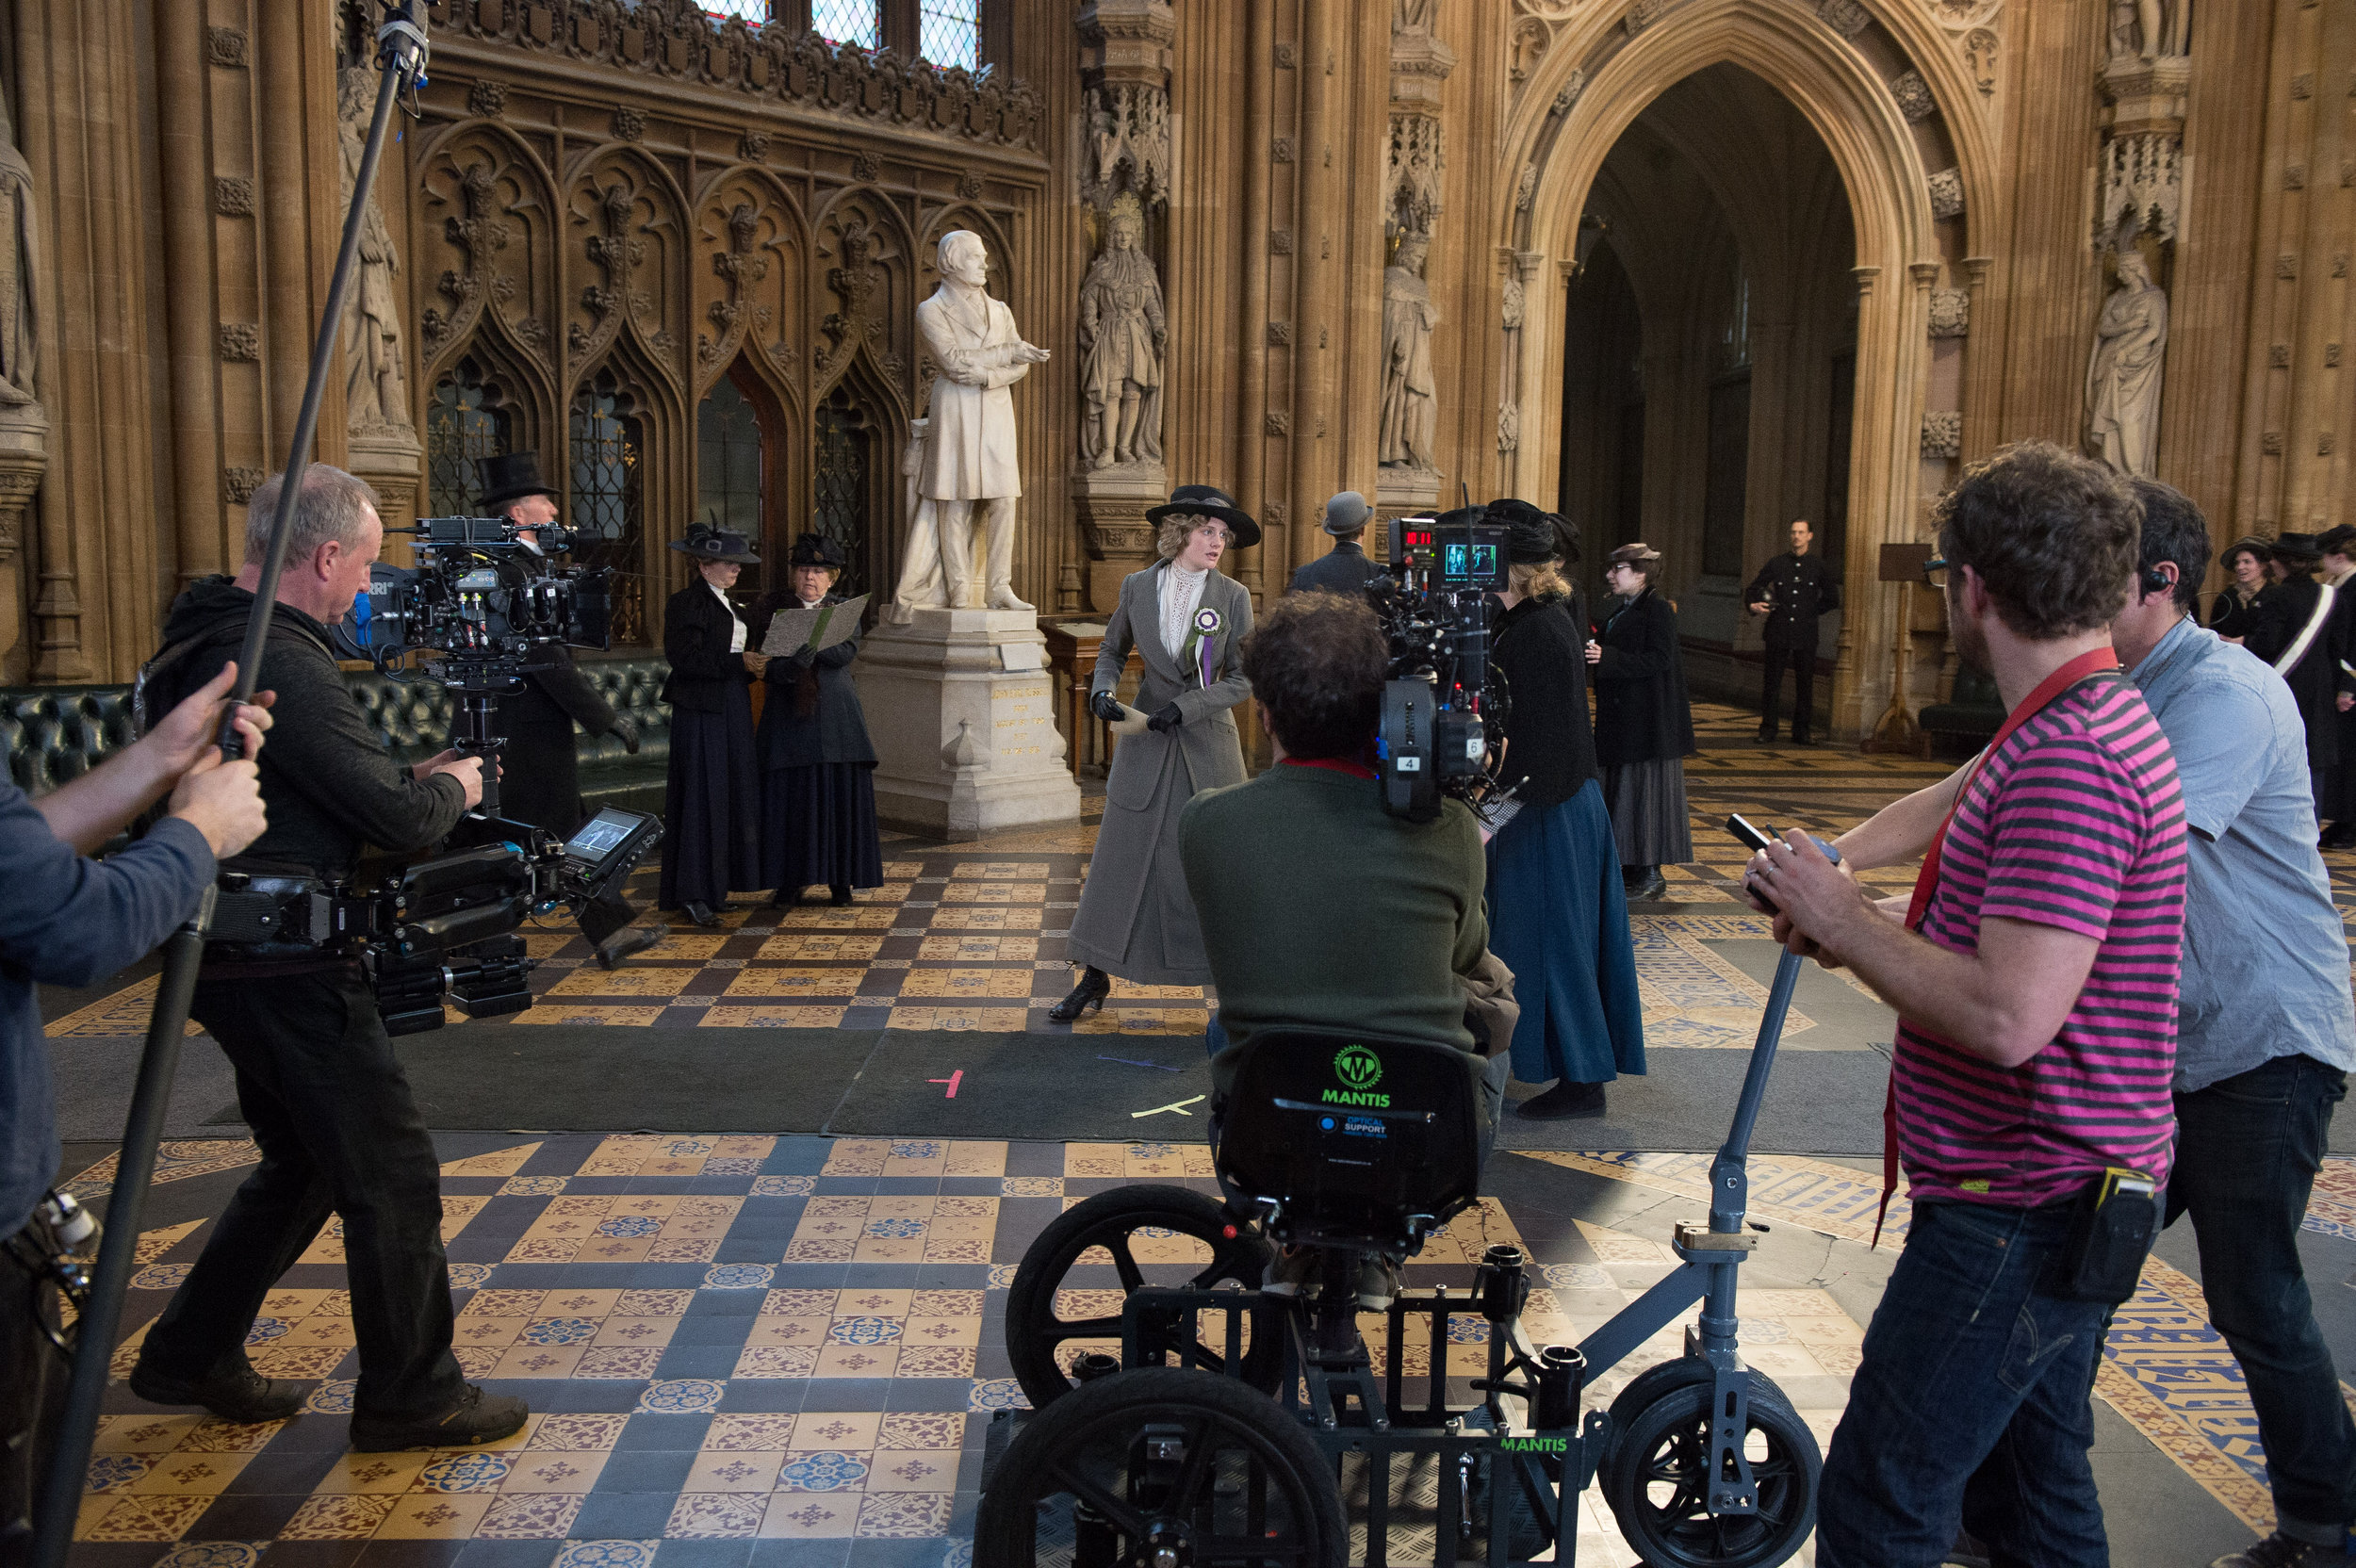 Filming of the feature film Suffragette